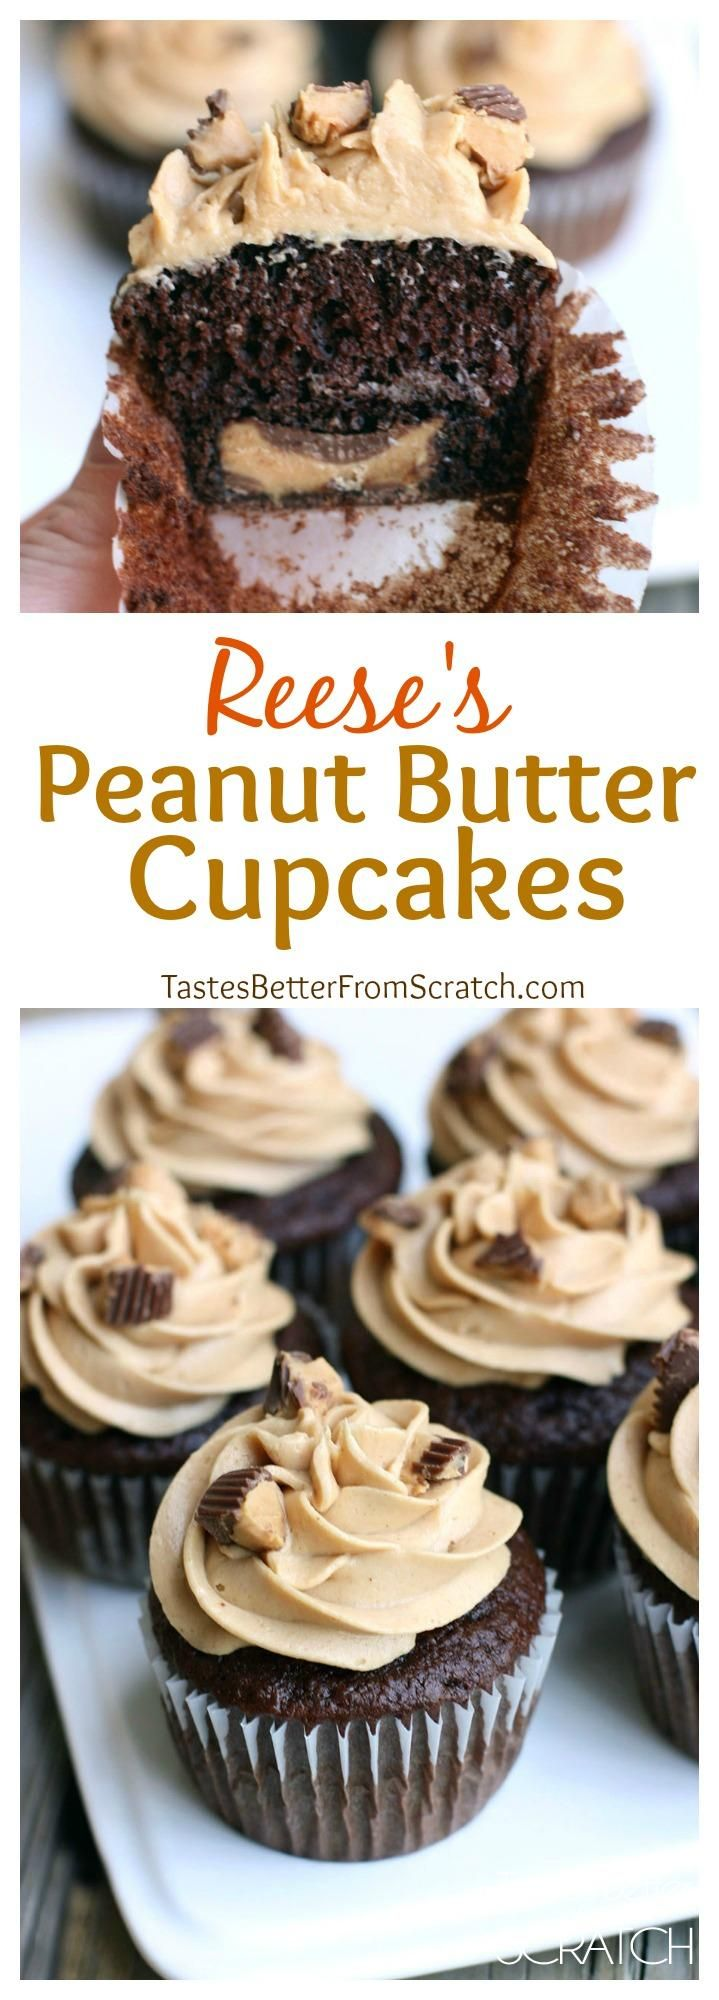 Reese's Peanut Butter Cupcakes is part of Reeses peanut butter cupcakes - These Reese's Peanut Butter Cupcakes are always a crowd favorite! Chocolate cupcakes with peanut butter frosting and a Reese's chocolate baked in the center